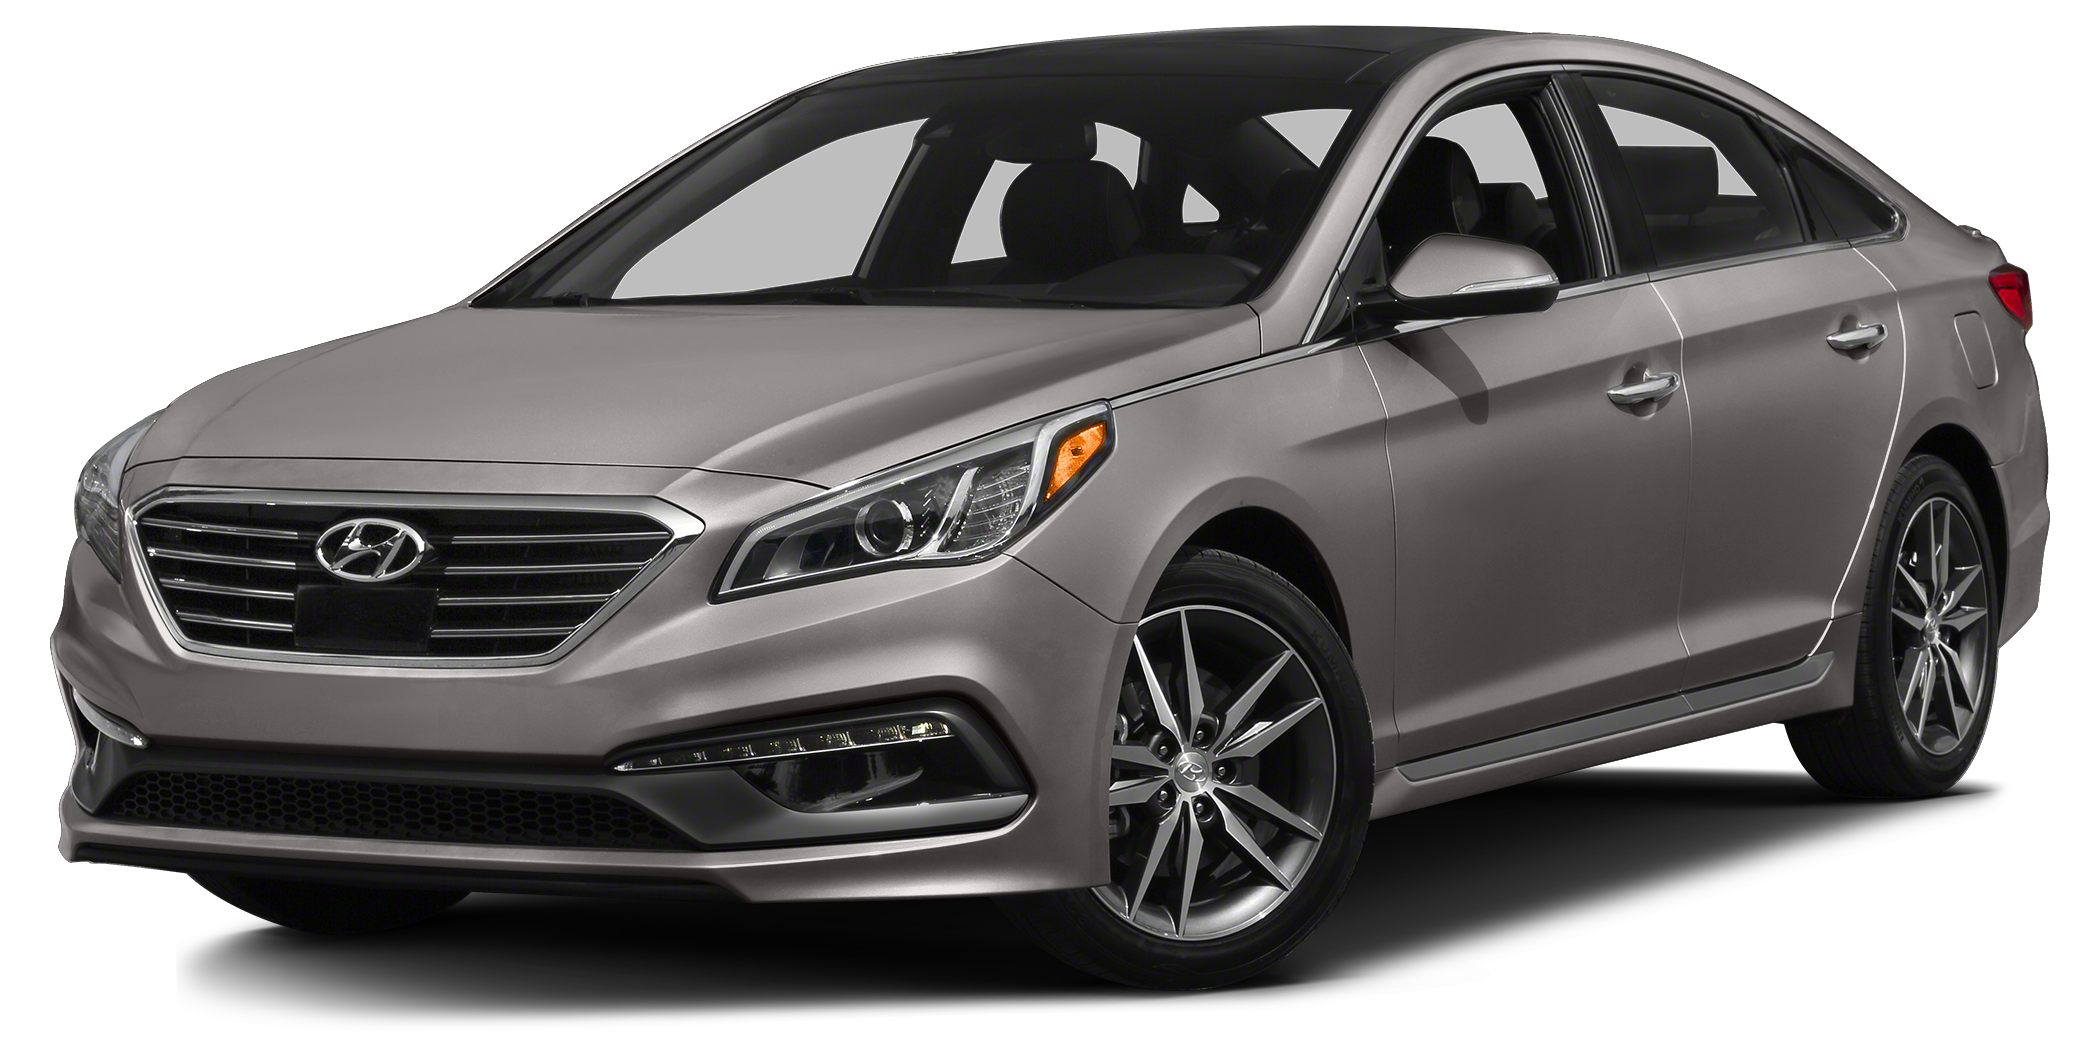 2015 Hyundai Sonata SE Price includes 1500 - Retail Bonus Cash Exp 0731 Miles 10Color Qua